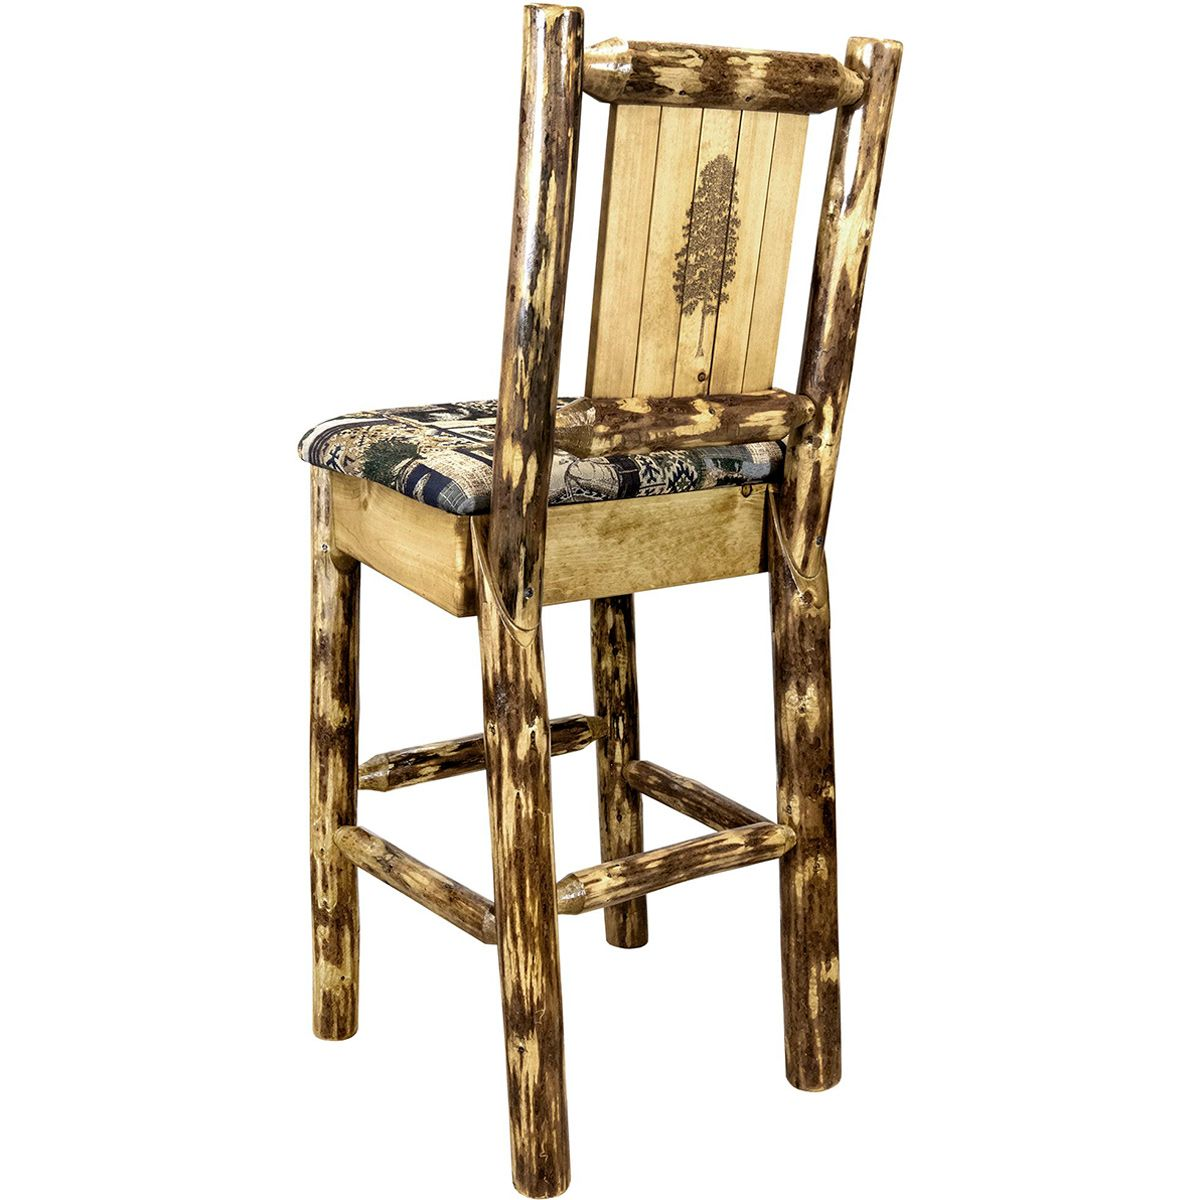 Woodsman Counter Stool with Back & Laser-Engraved Pine Tree Design